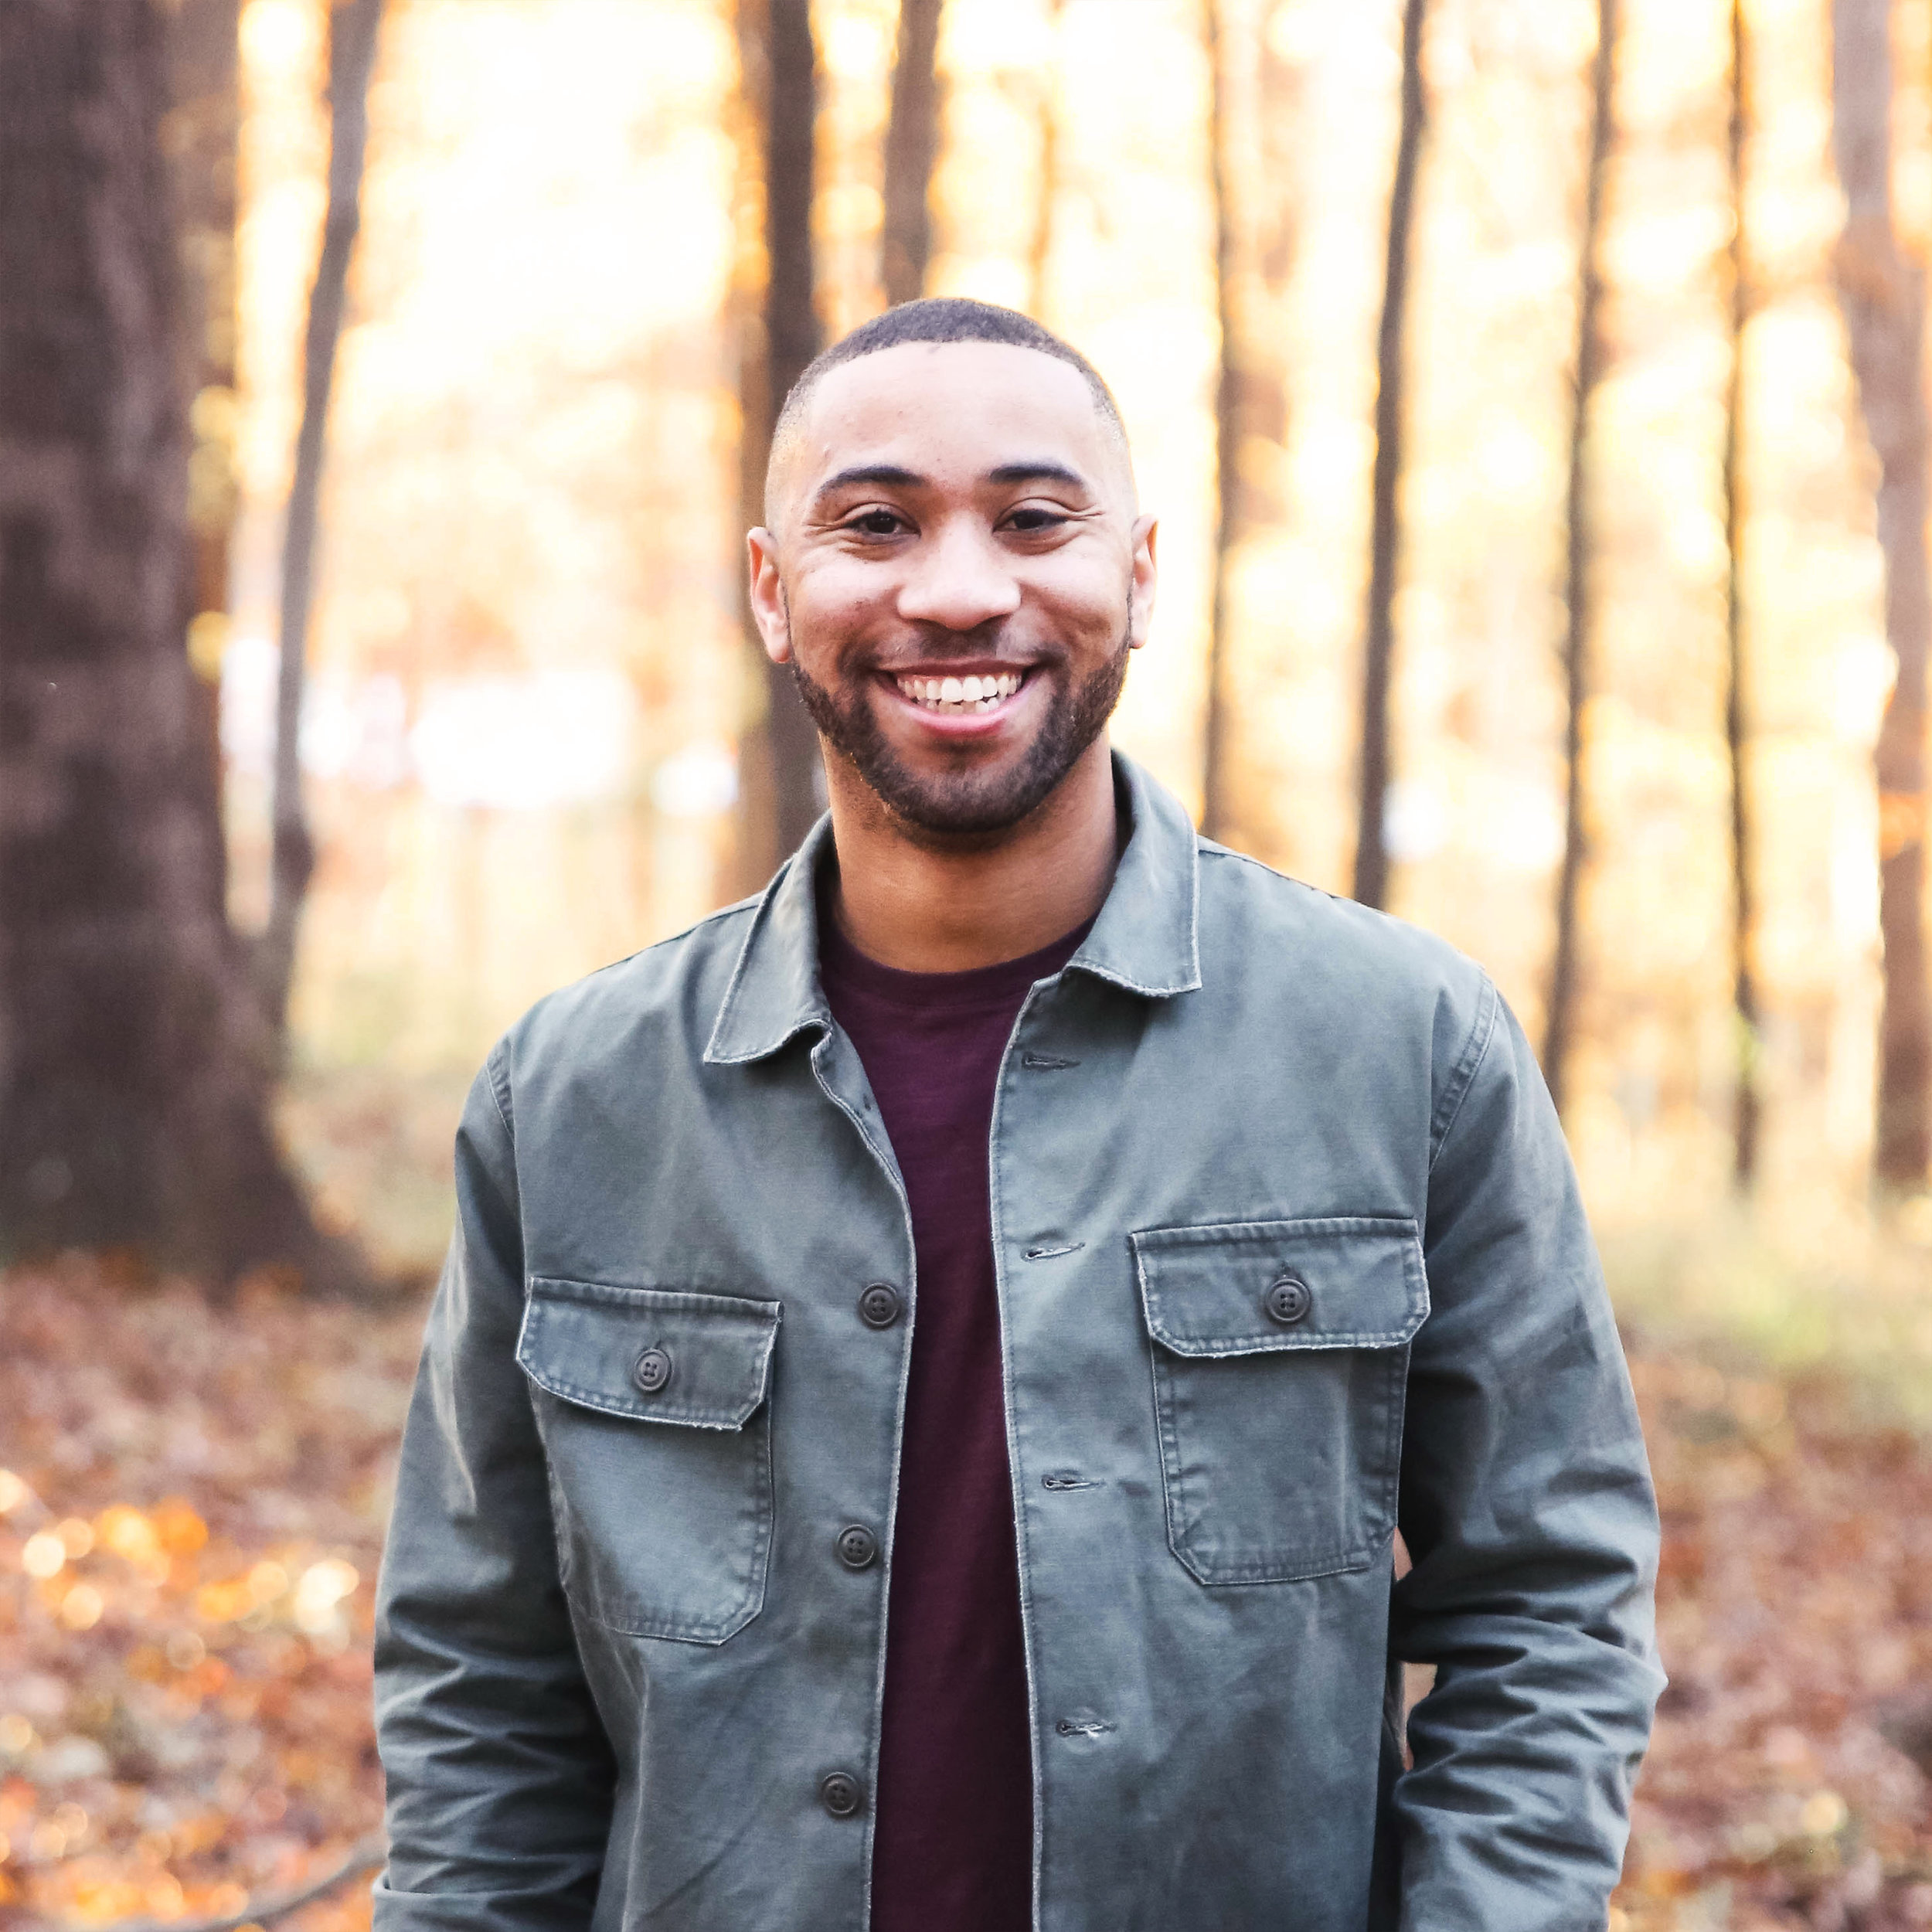 Joshua Redding - Pastor Joshua is the lead pastor of Highlight Church. In May 2016, Pastor Joshua and Pastor Kaira, along with their two handsome boys, Jaehziel, and Judah, moved from Orlando, FL to Gaithersburg, MD. Through it all, they are determined to see people find true life in Jesus Christ!——